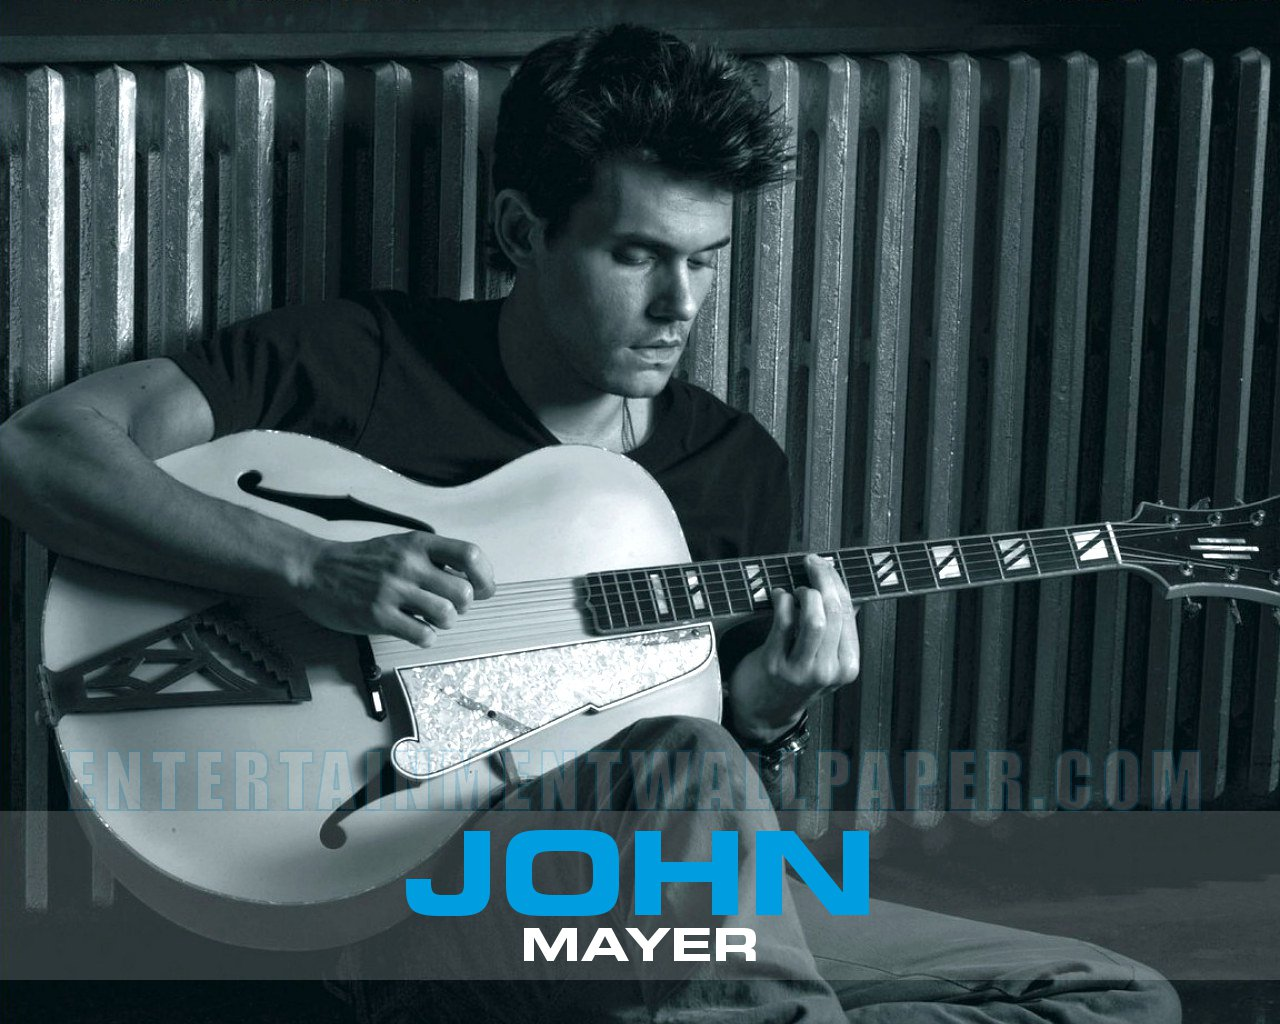 John Mayer Wallpaper: Download John Mayer Wallpaper Gallery